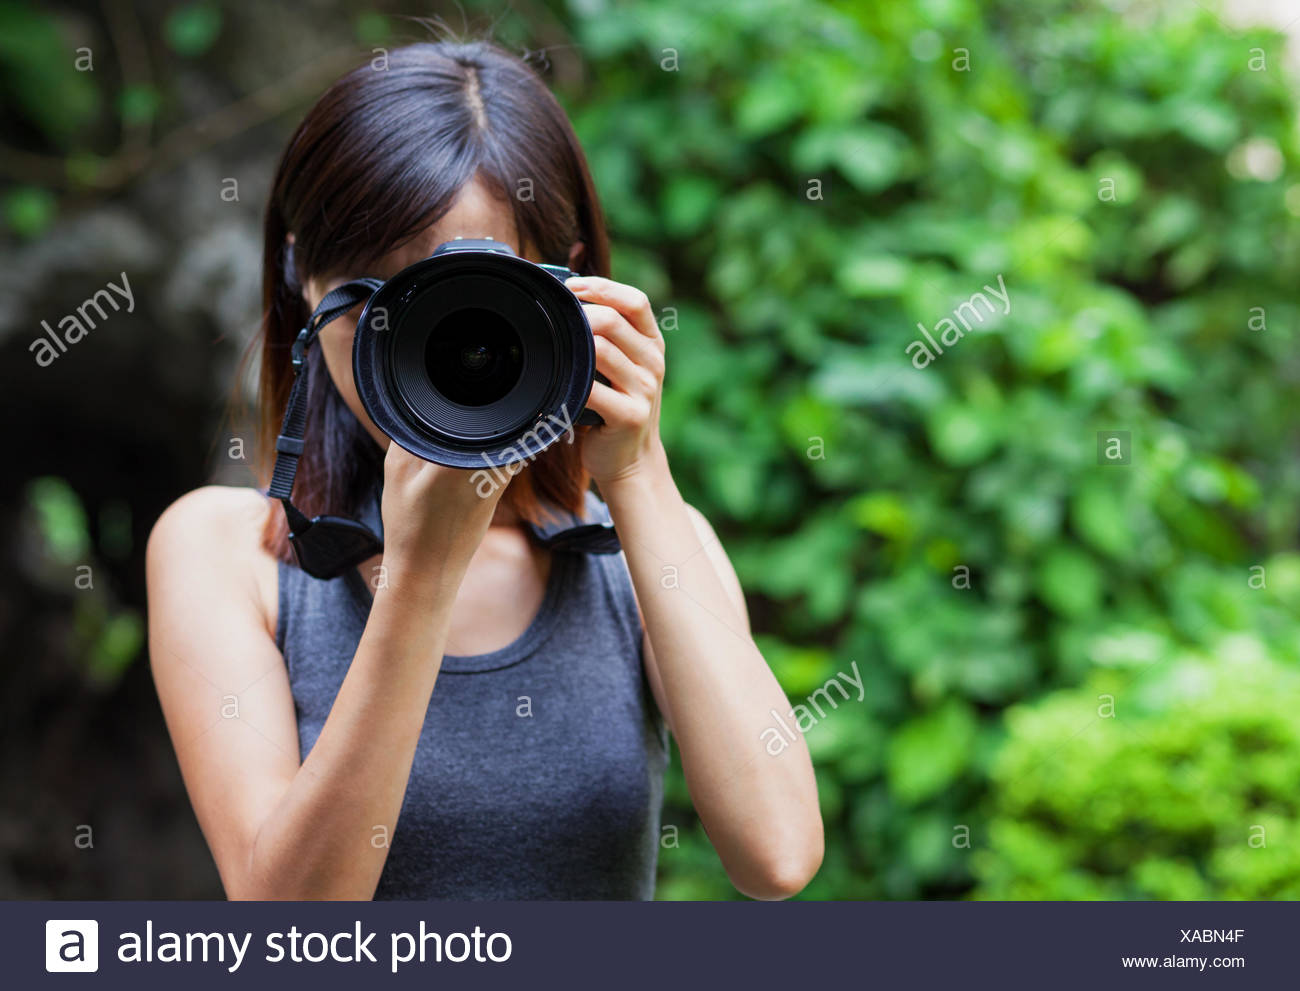 Woman Female Photo Camera Photography Picture Image Copy Deduction